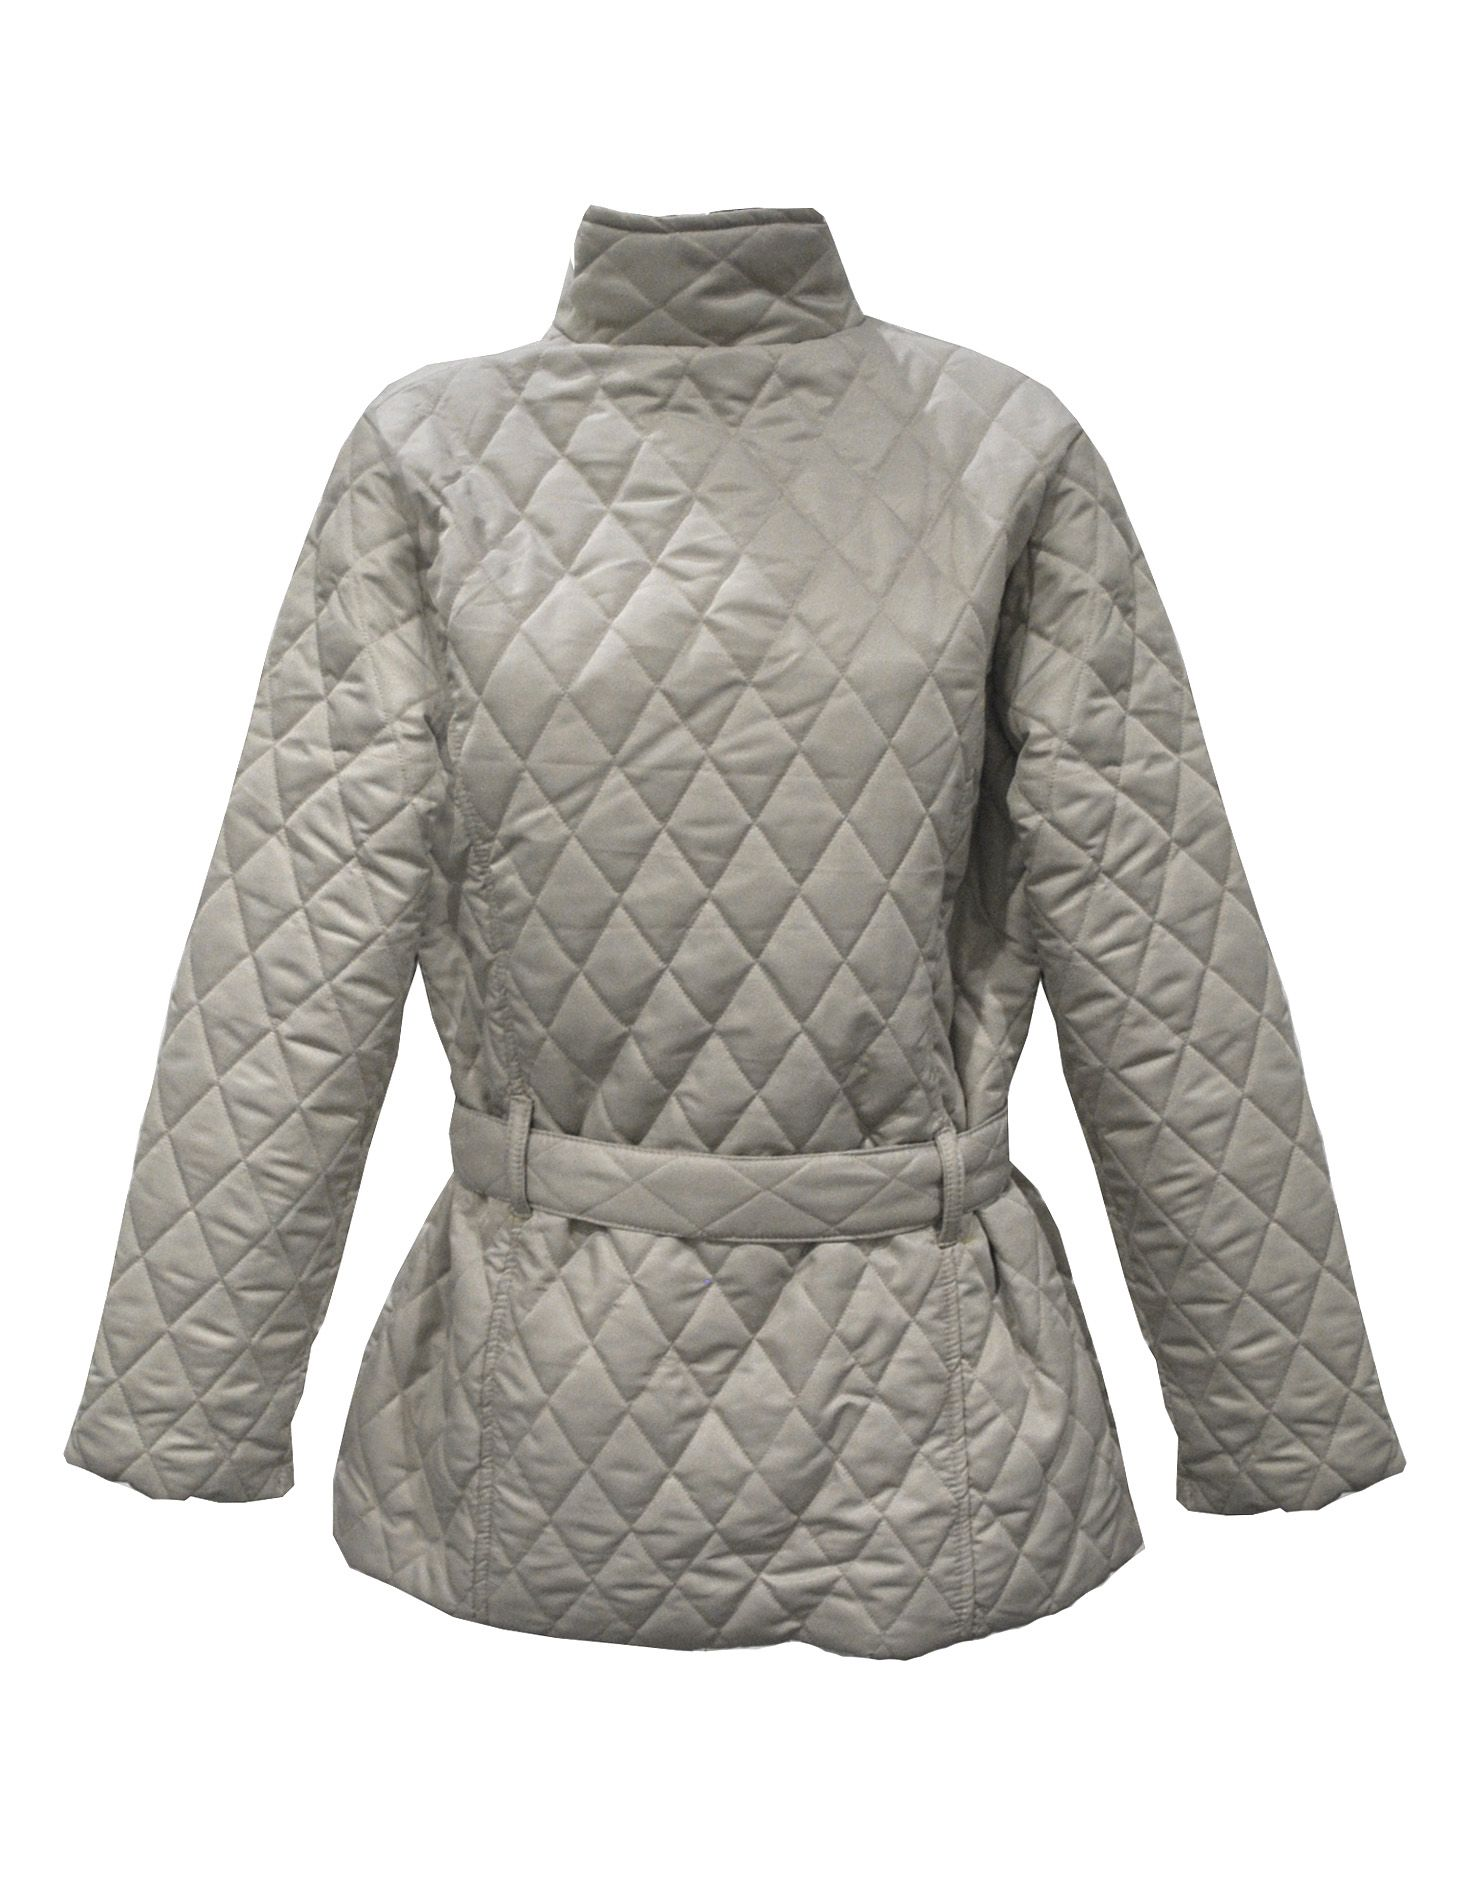 Plus Size Stone Quilted Jacket : quilted jacket plus size - Adamdwight.com